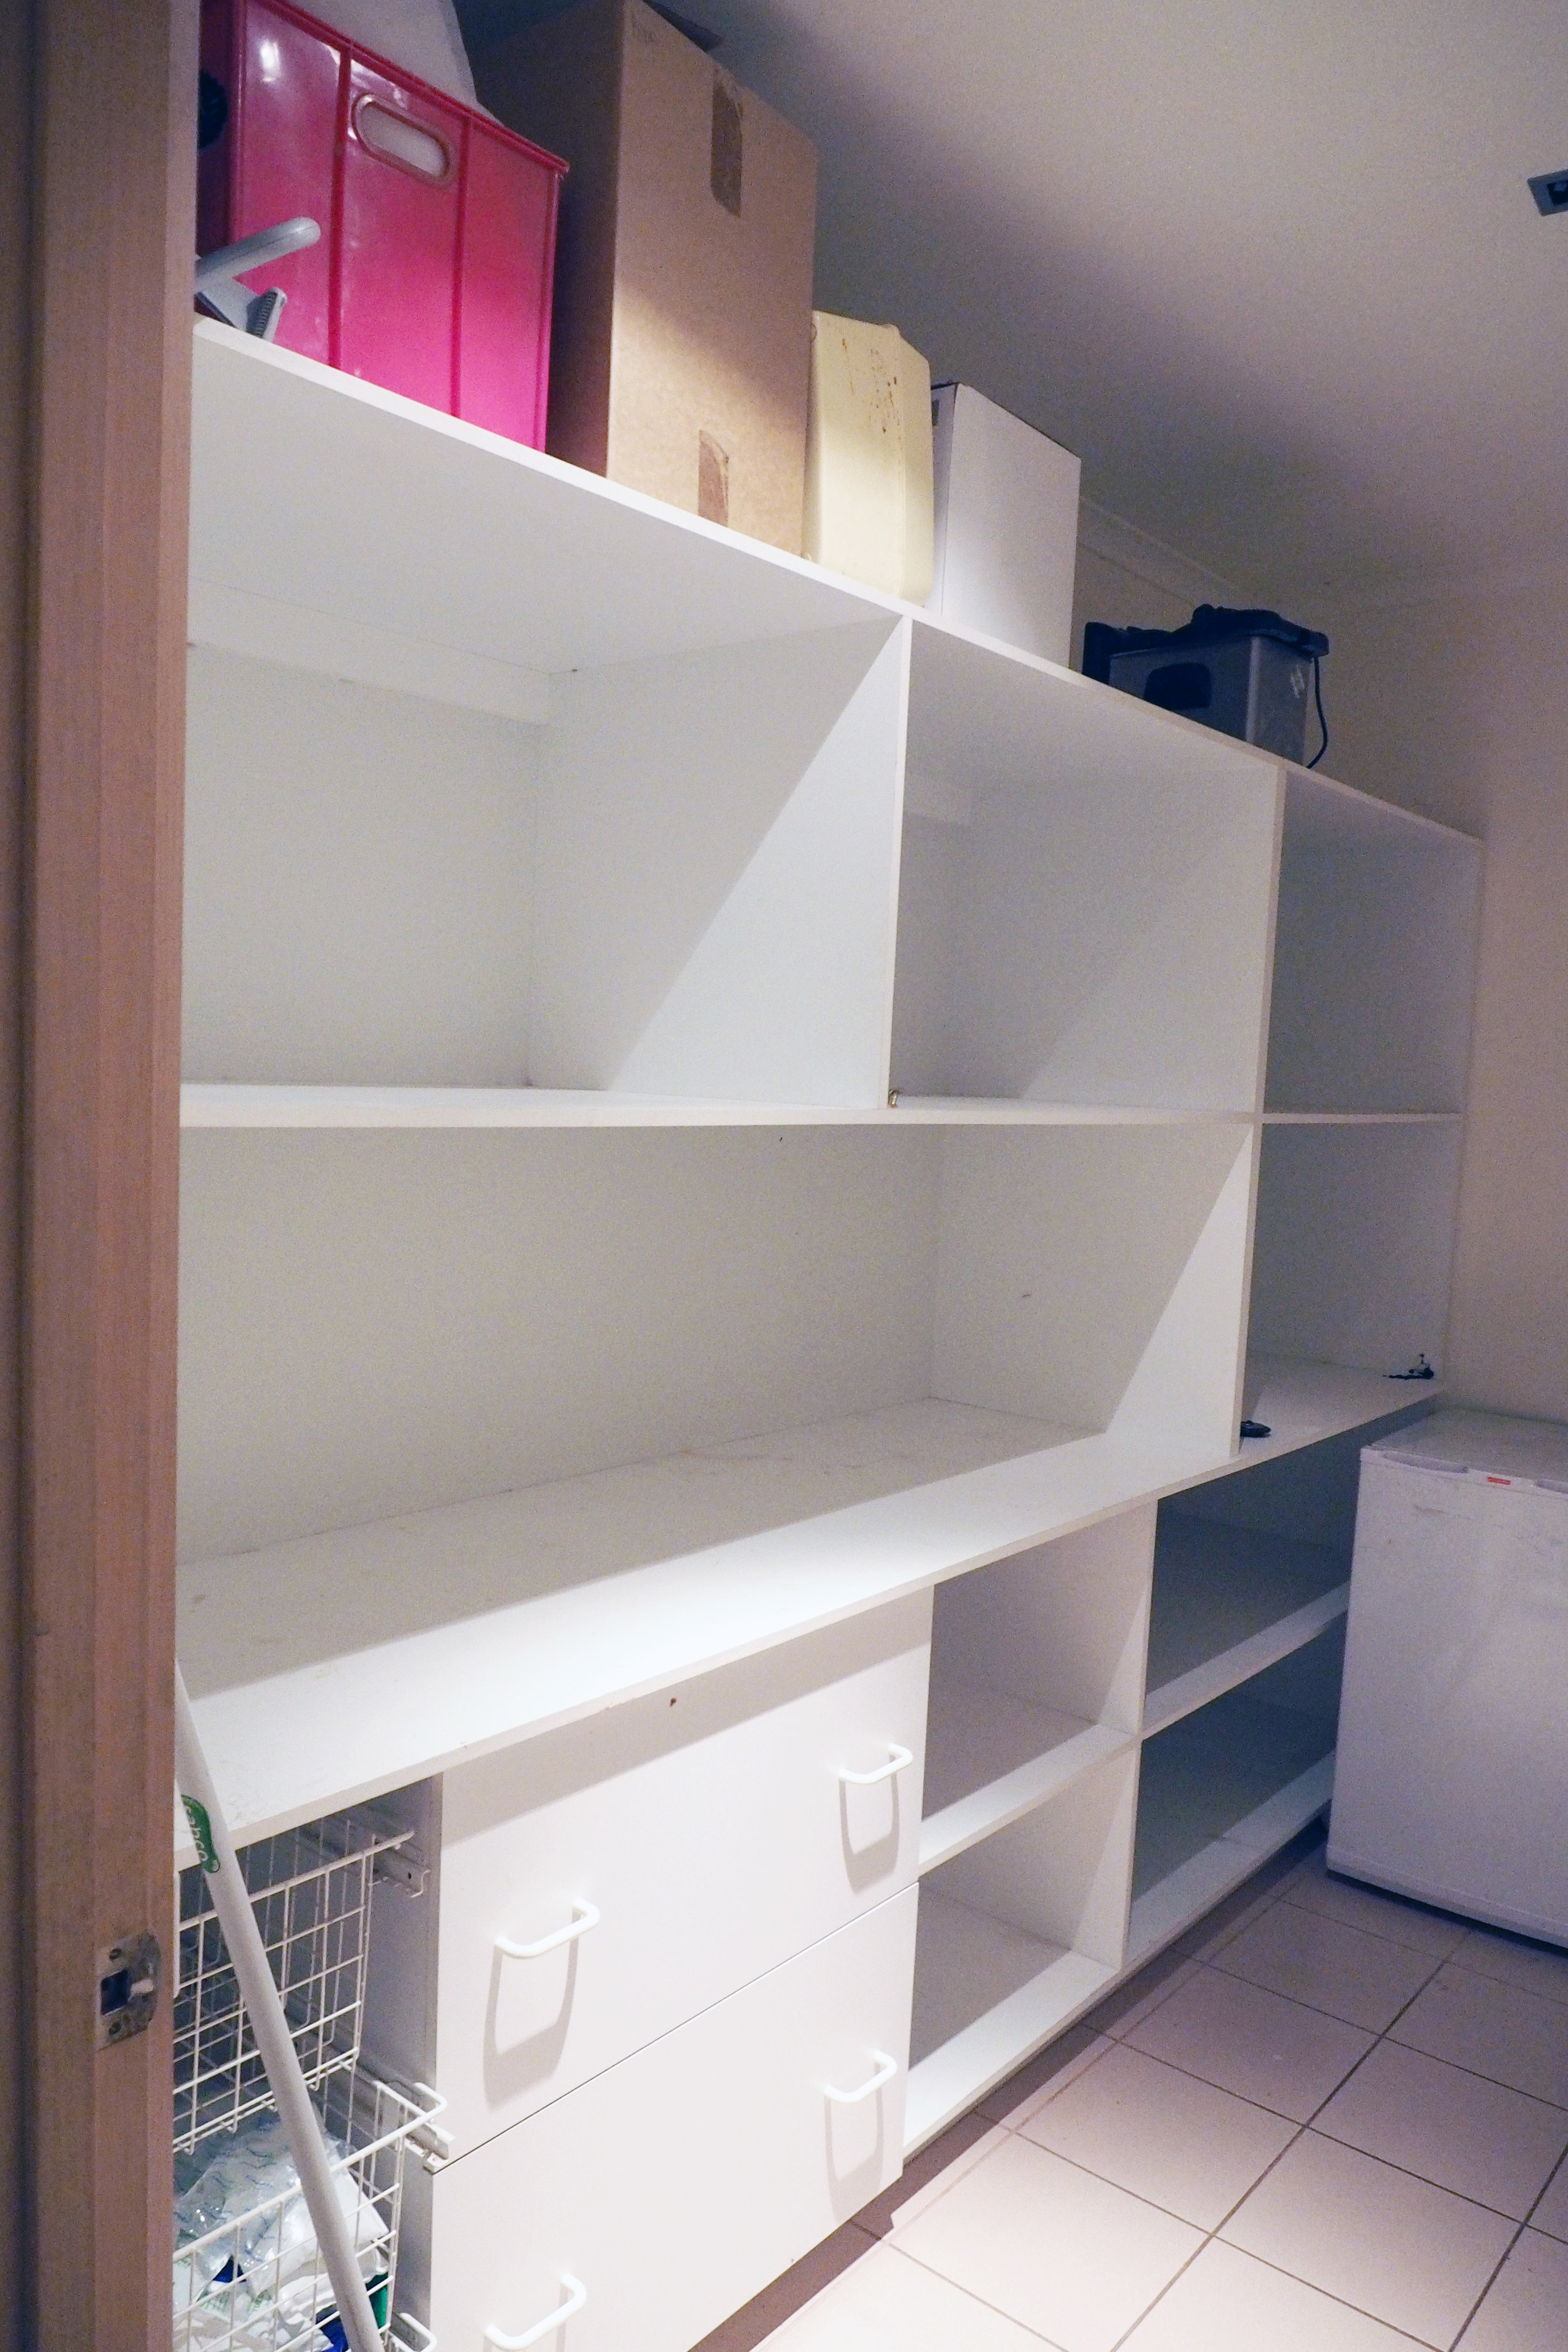 How to organise a pantry - completely empty shelves to create a blank slate {The Organised You|